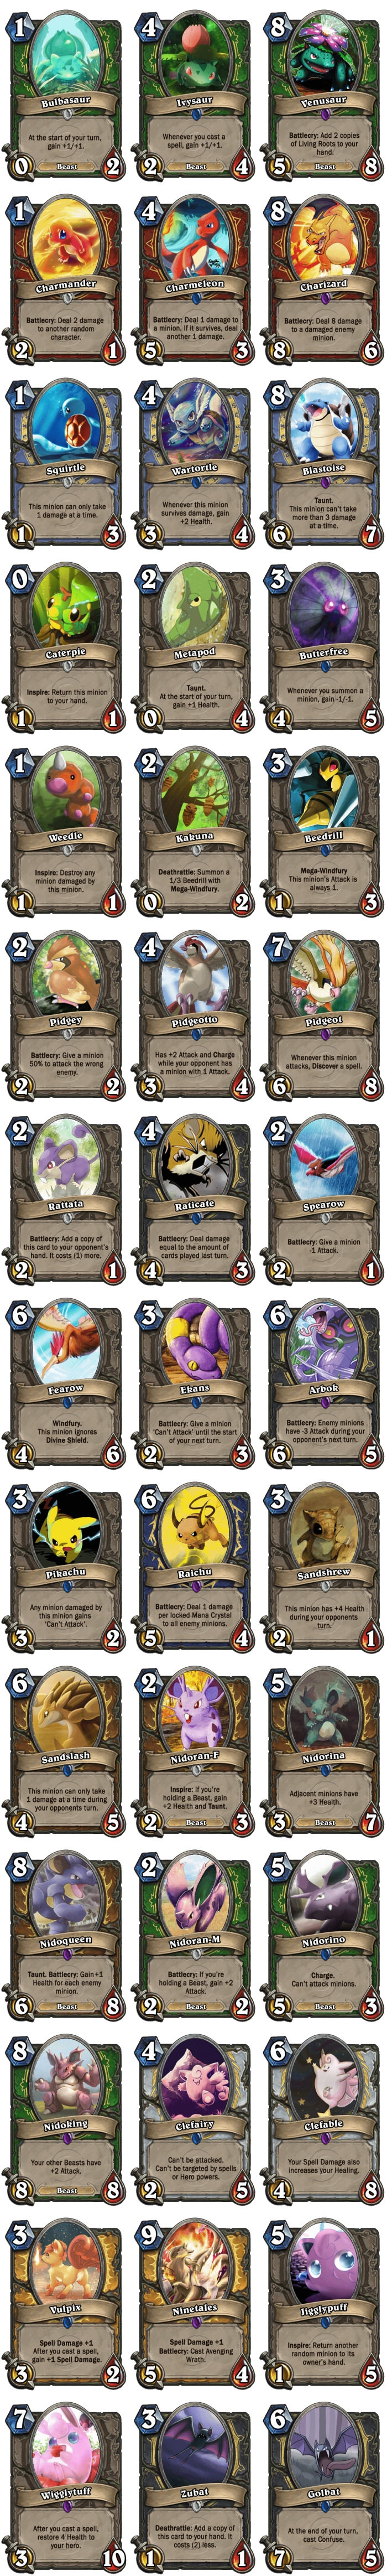 The first 42 Pokemon as Hearthstone cards